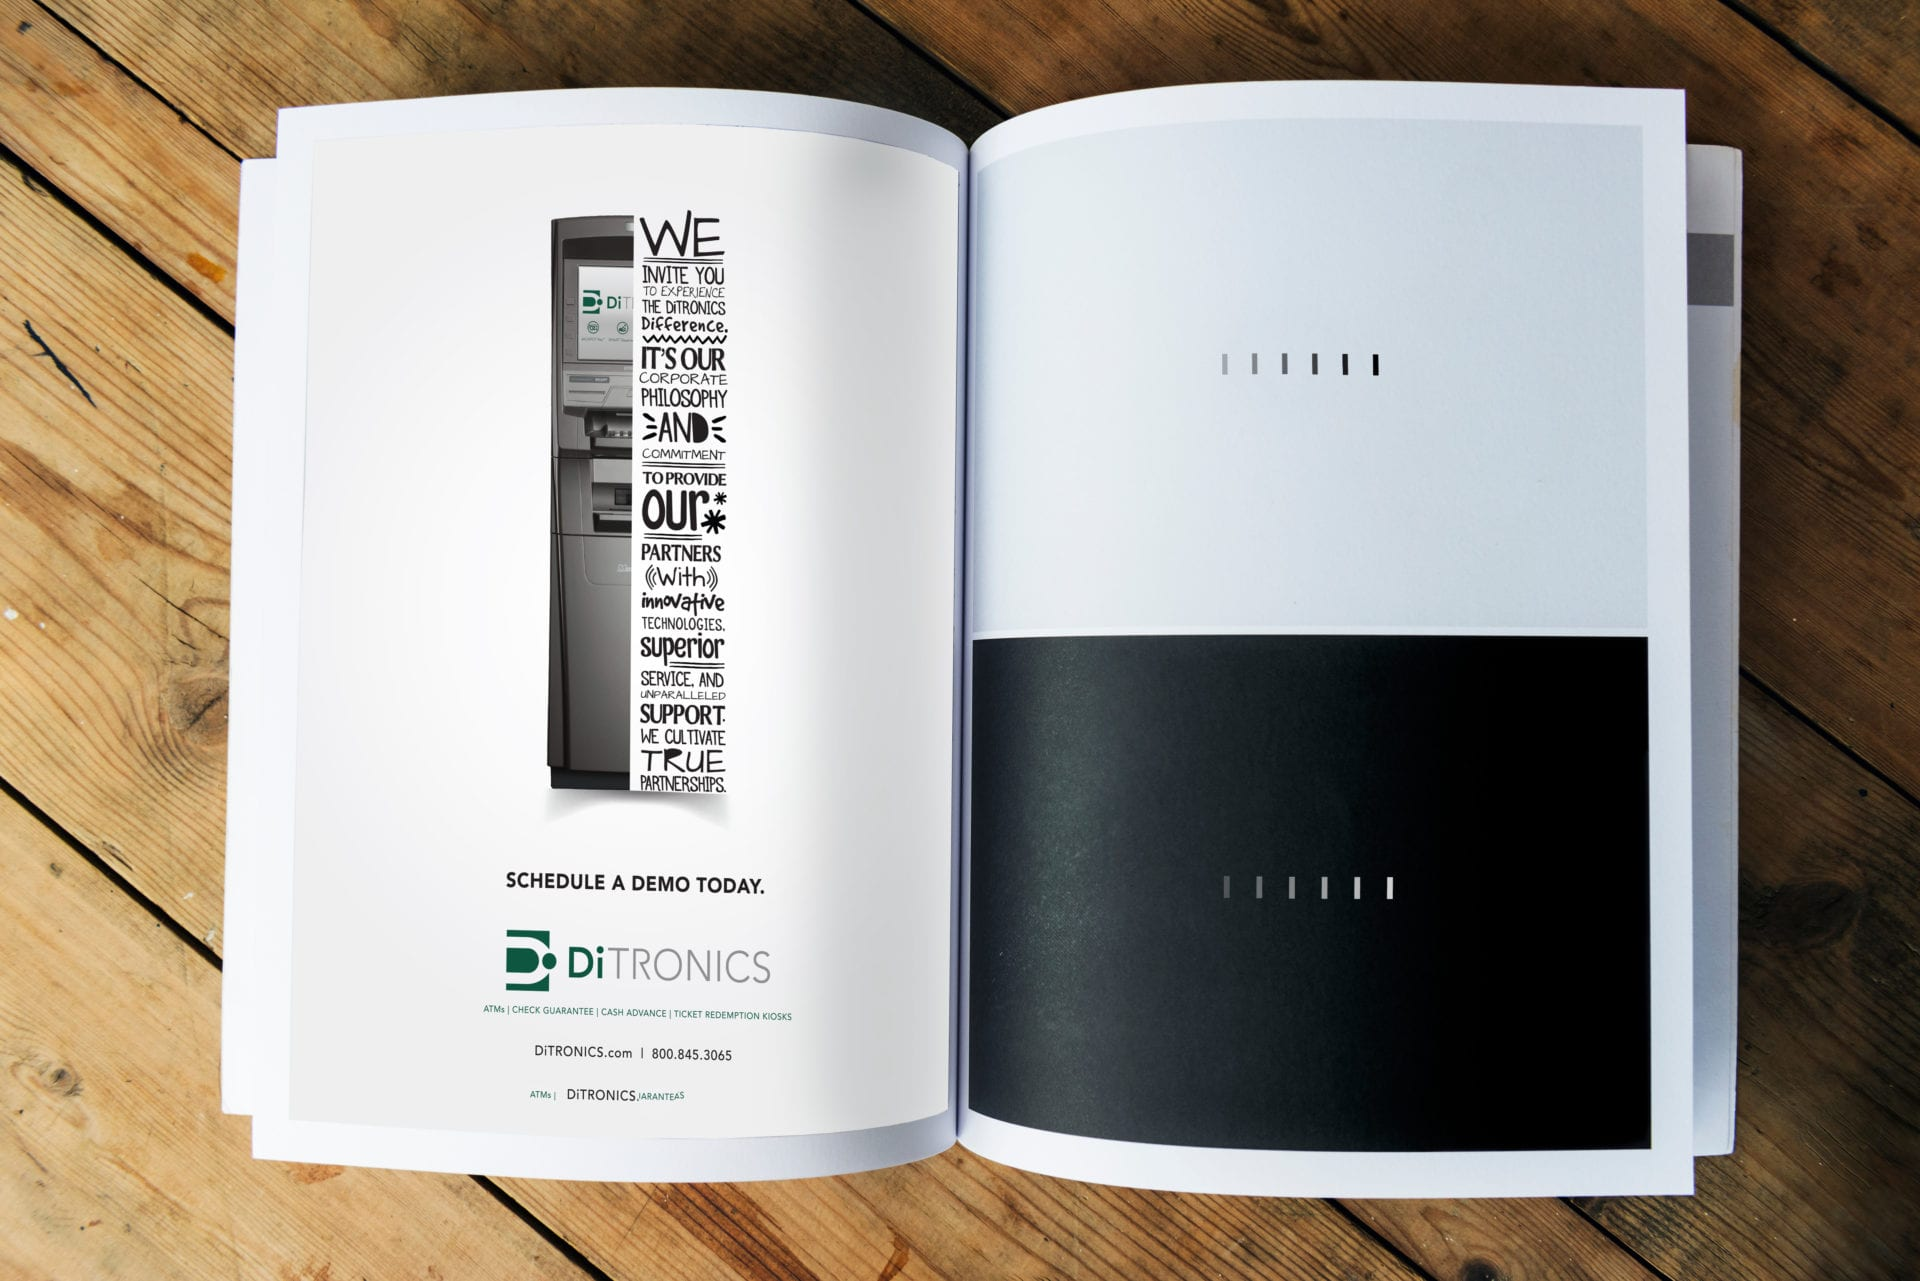 A magazine open with a advertisement for DiTronics, designed by Canyon Creative